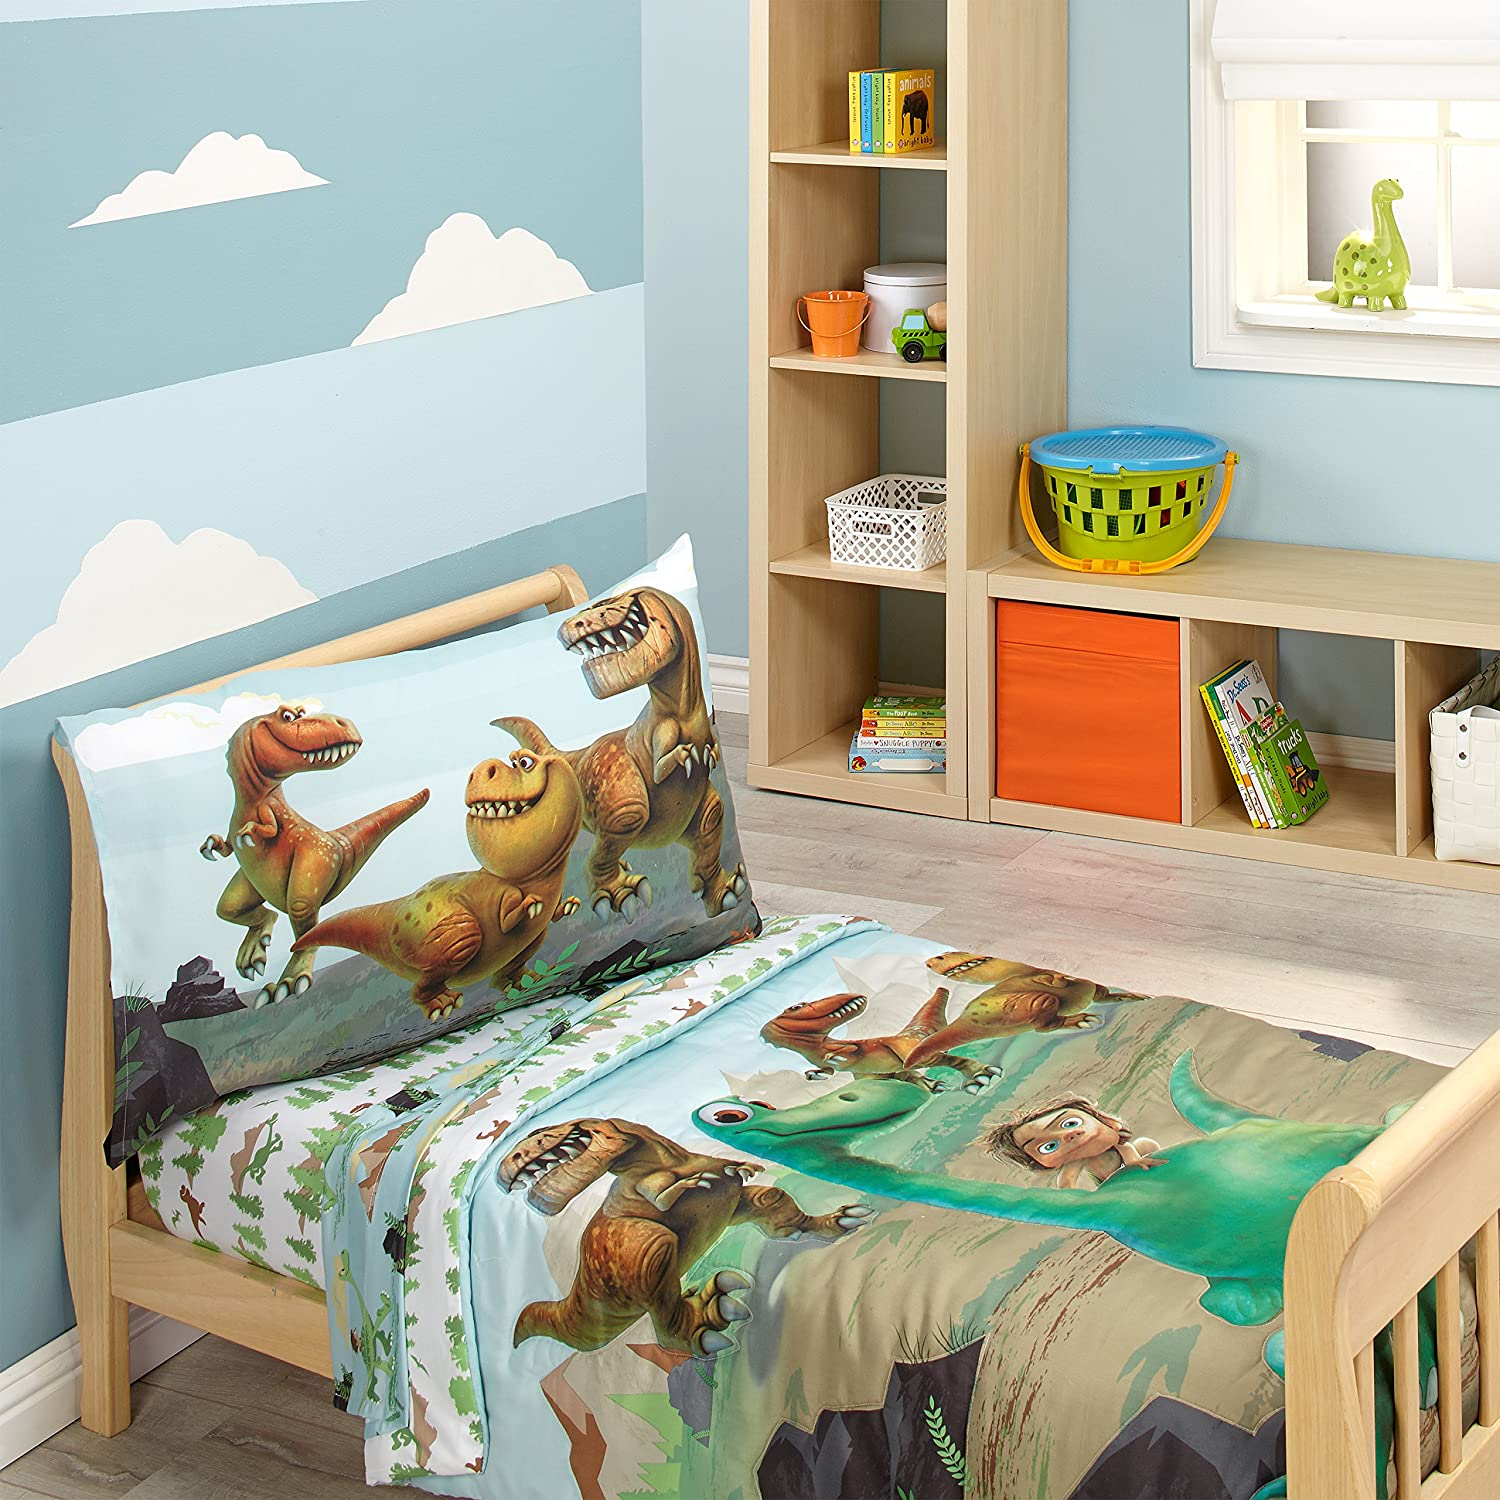 color baby bed ter mouse flat bedroom navy destroy ultimate fitted set pink warning bedding boys for kid brown will mistakes sheets mint large blush nursery white crib designer having full boy collection cot your room coral of a linen these sheet adorable girl size green sets and the mickey owl